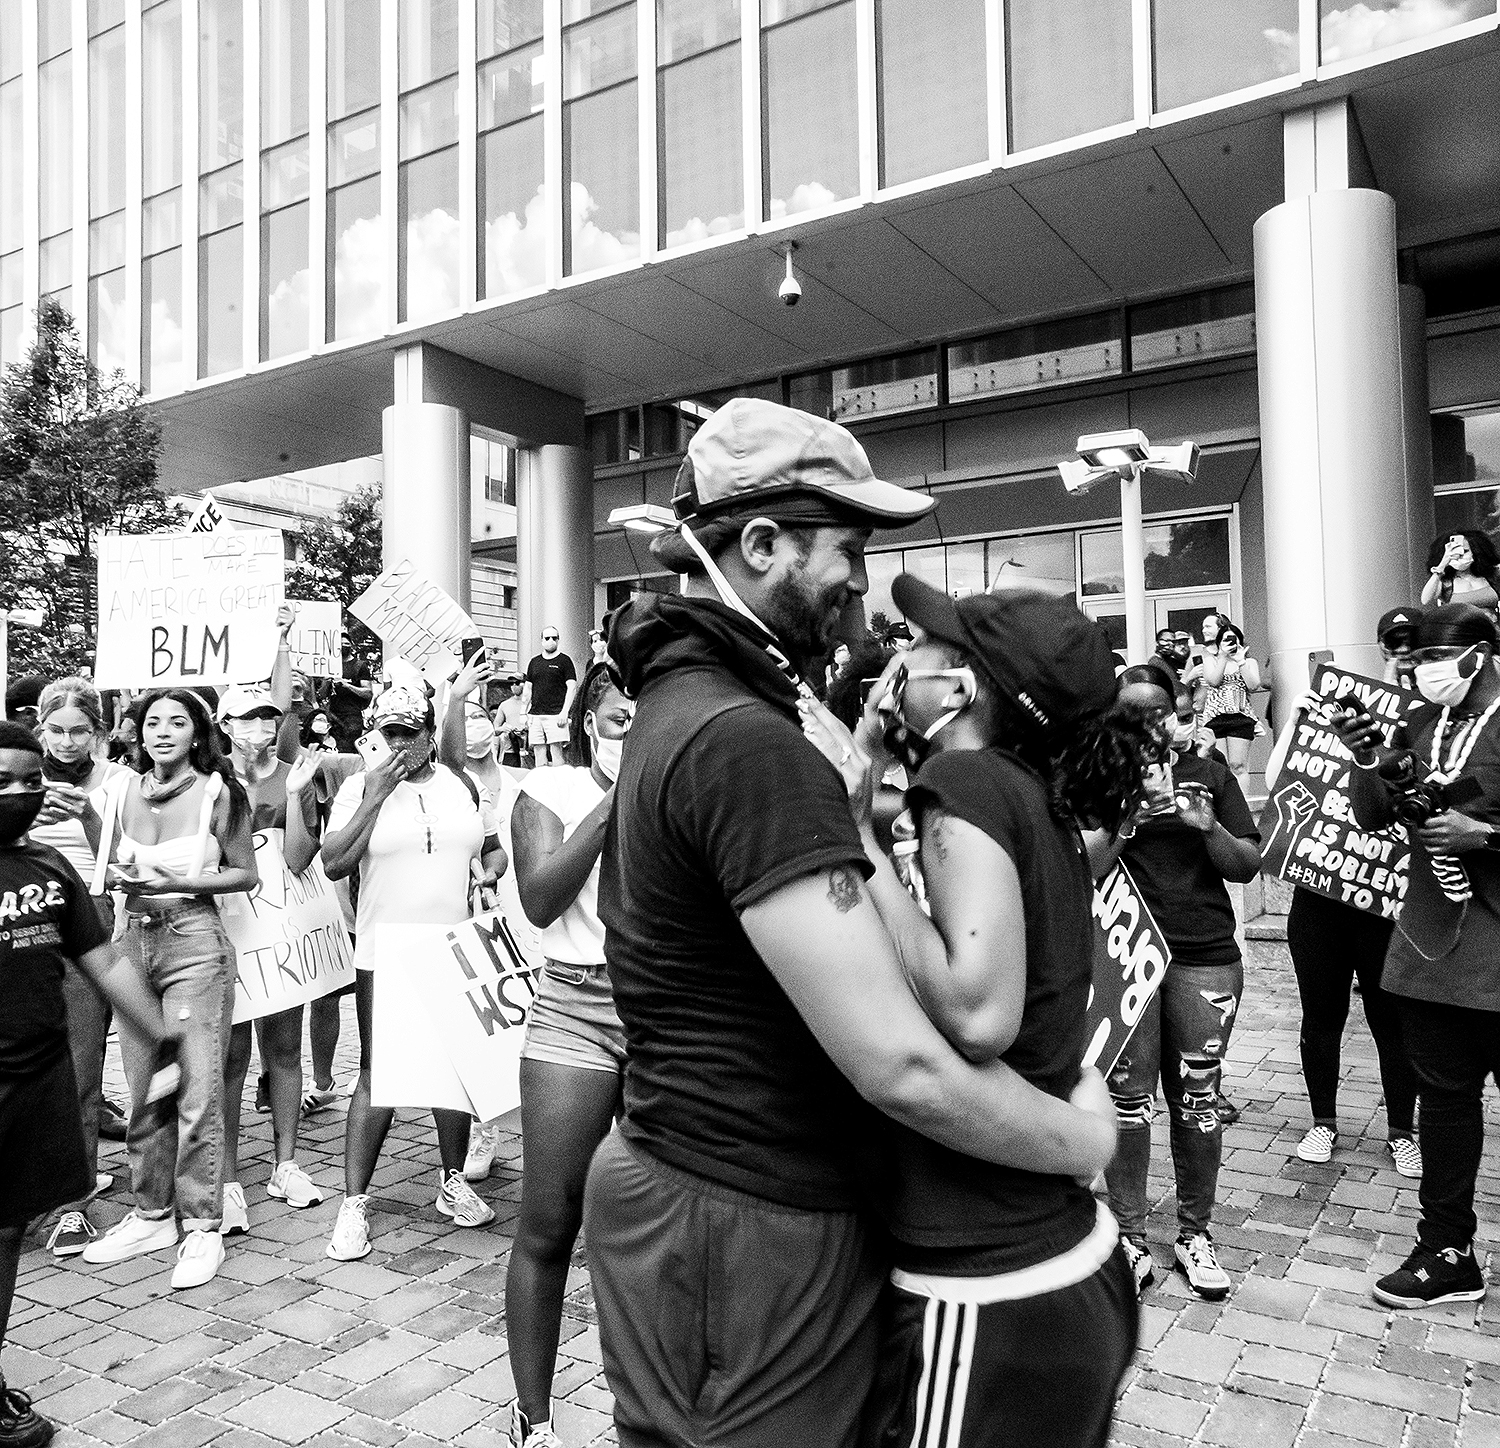 couple engaged at protest